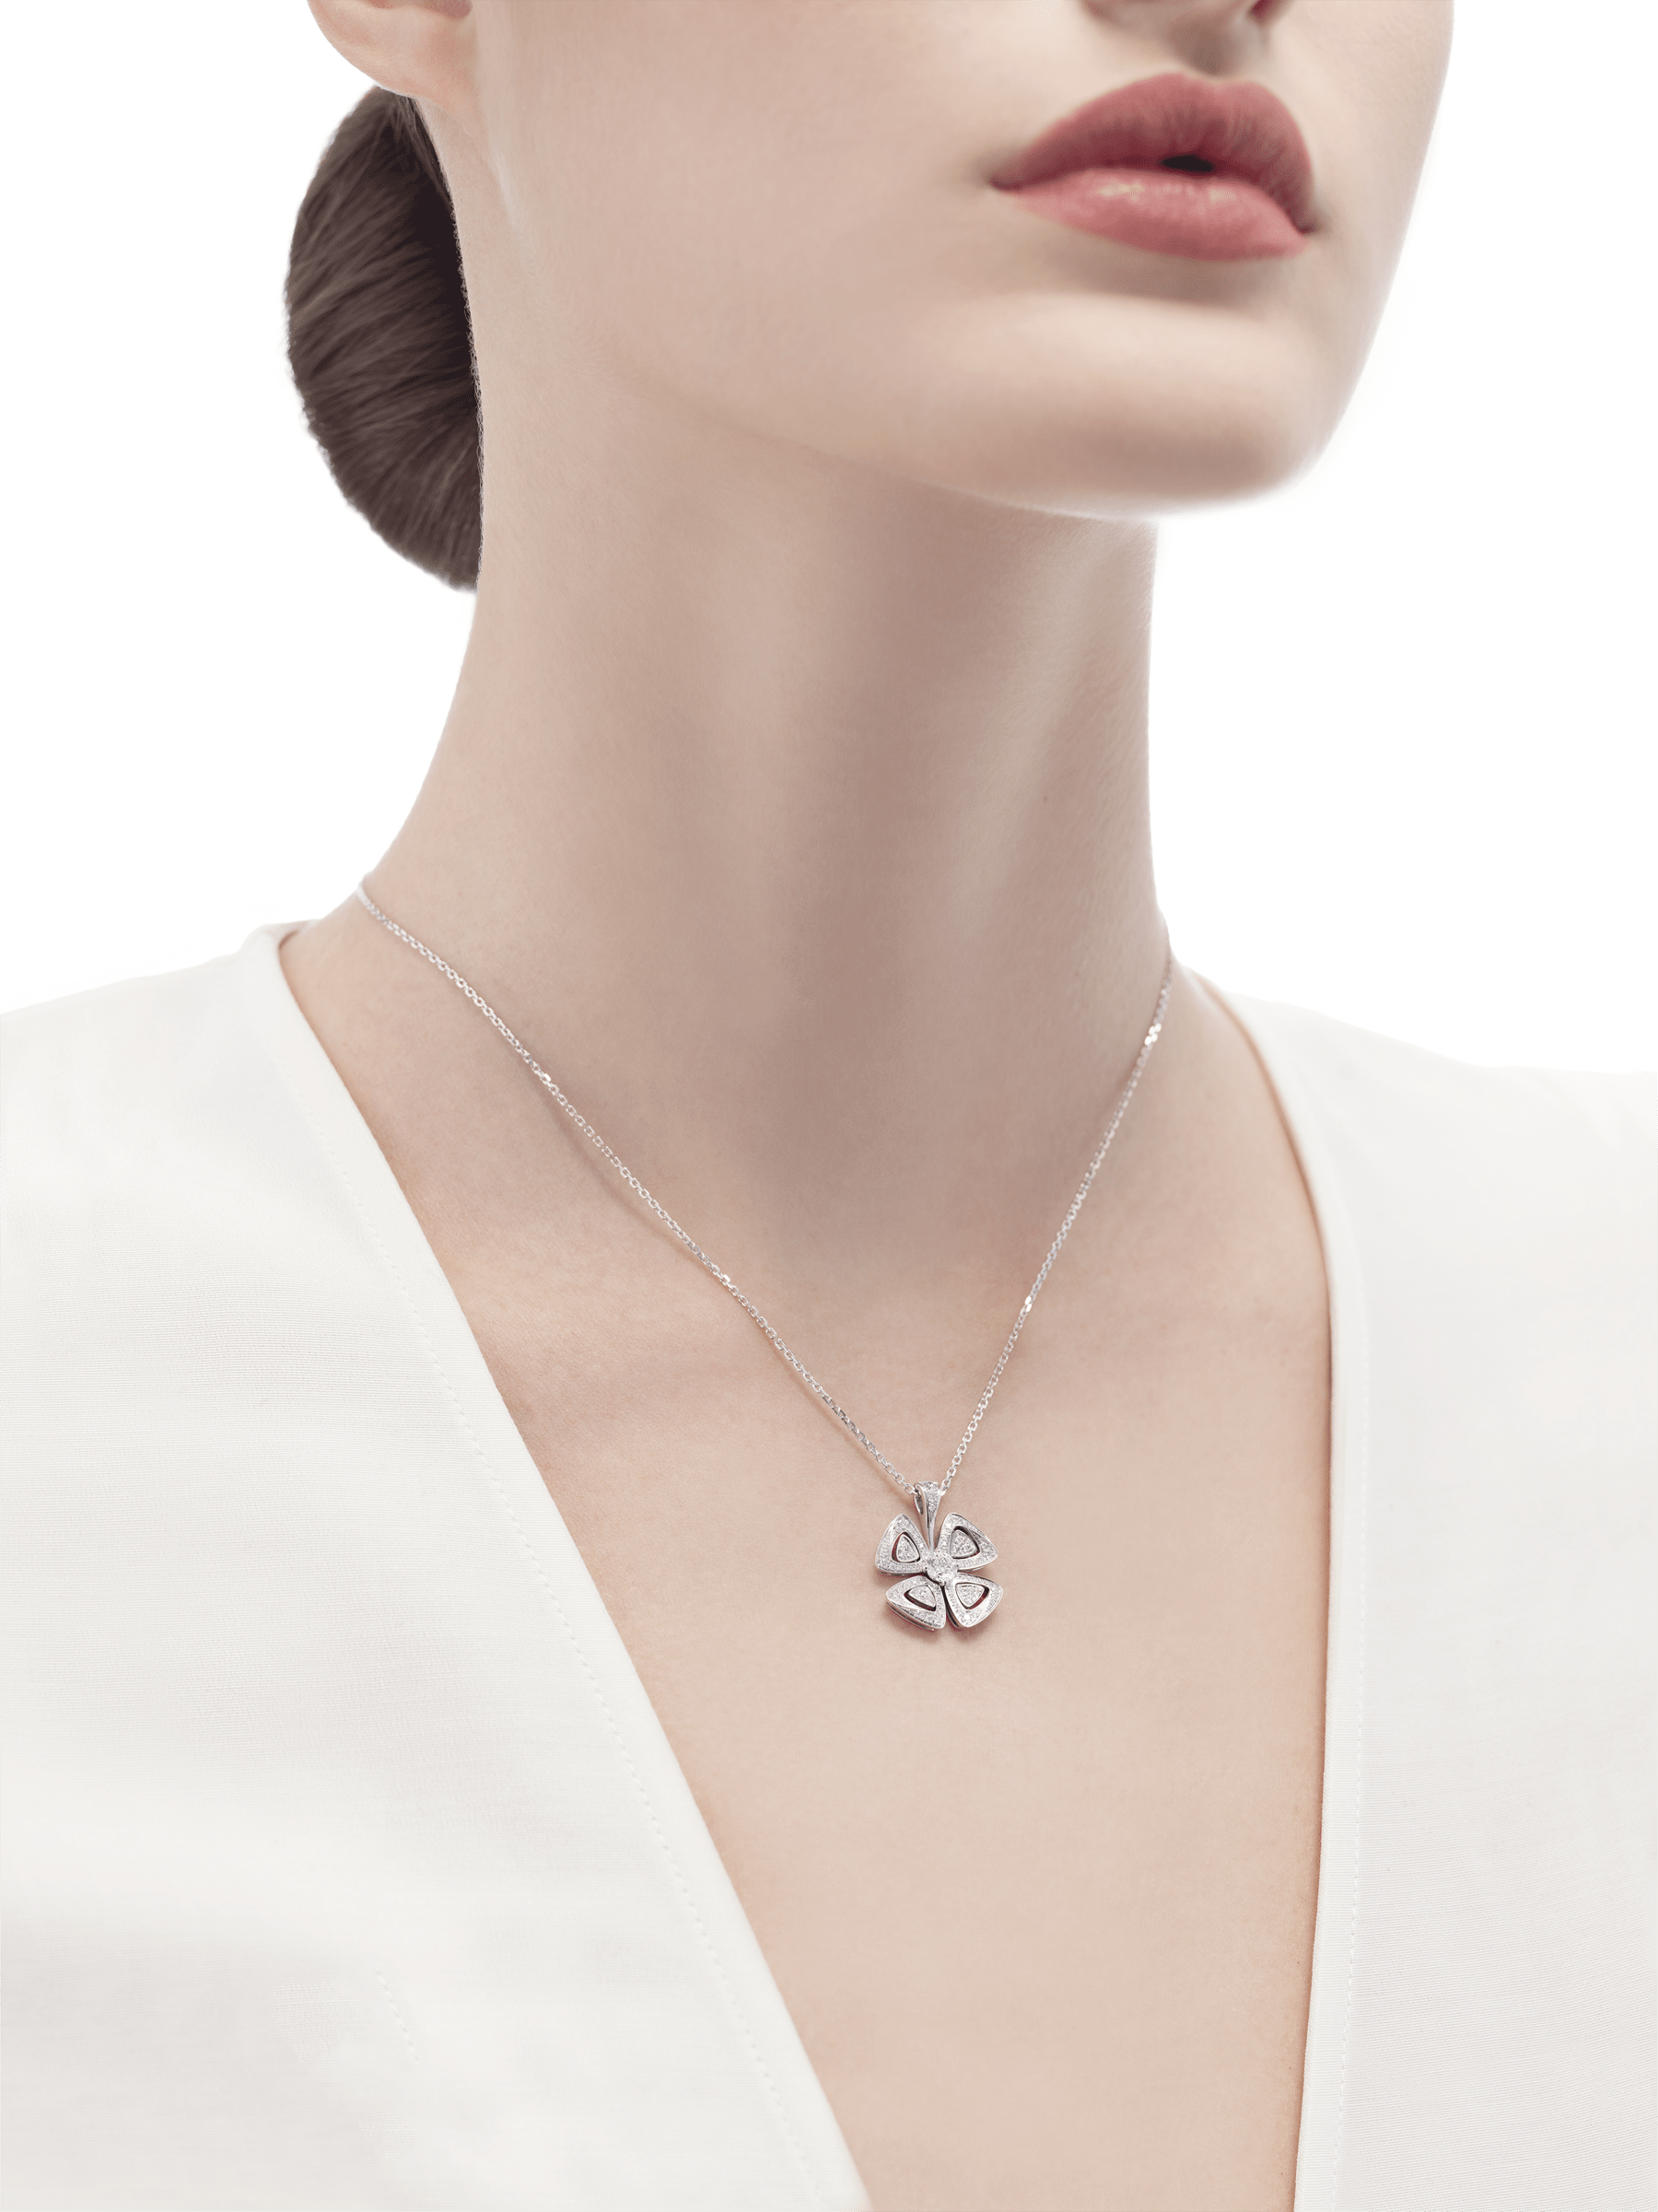 Fiorever 18 kt white gold necklace set with a central diamond and pavé diamonds. 354496 image 5